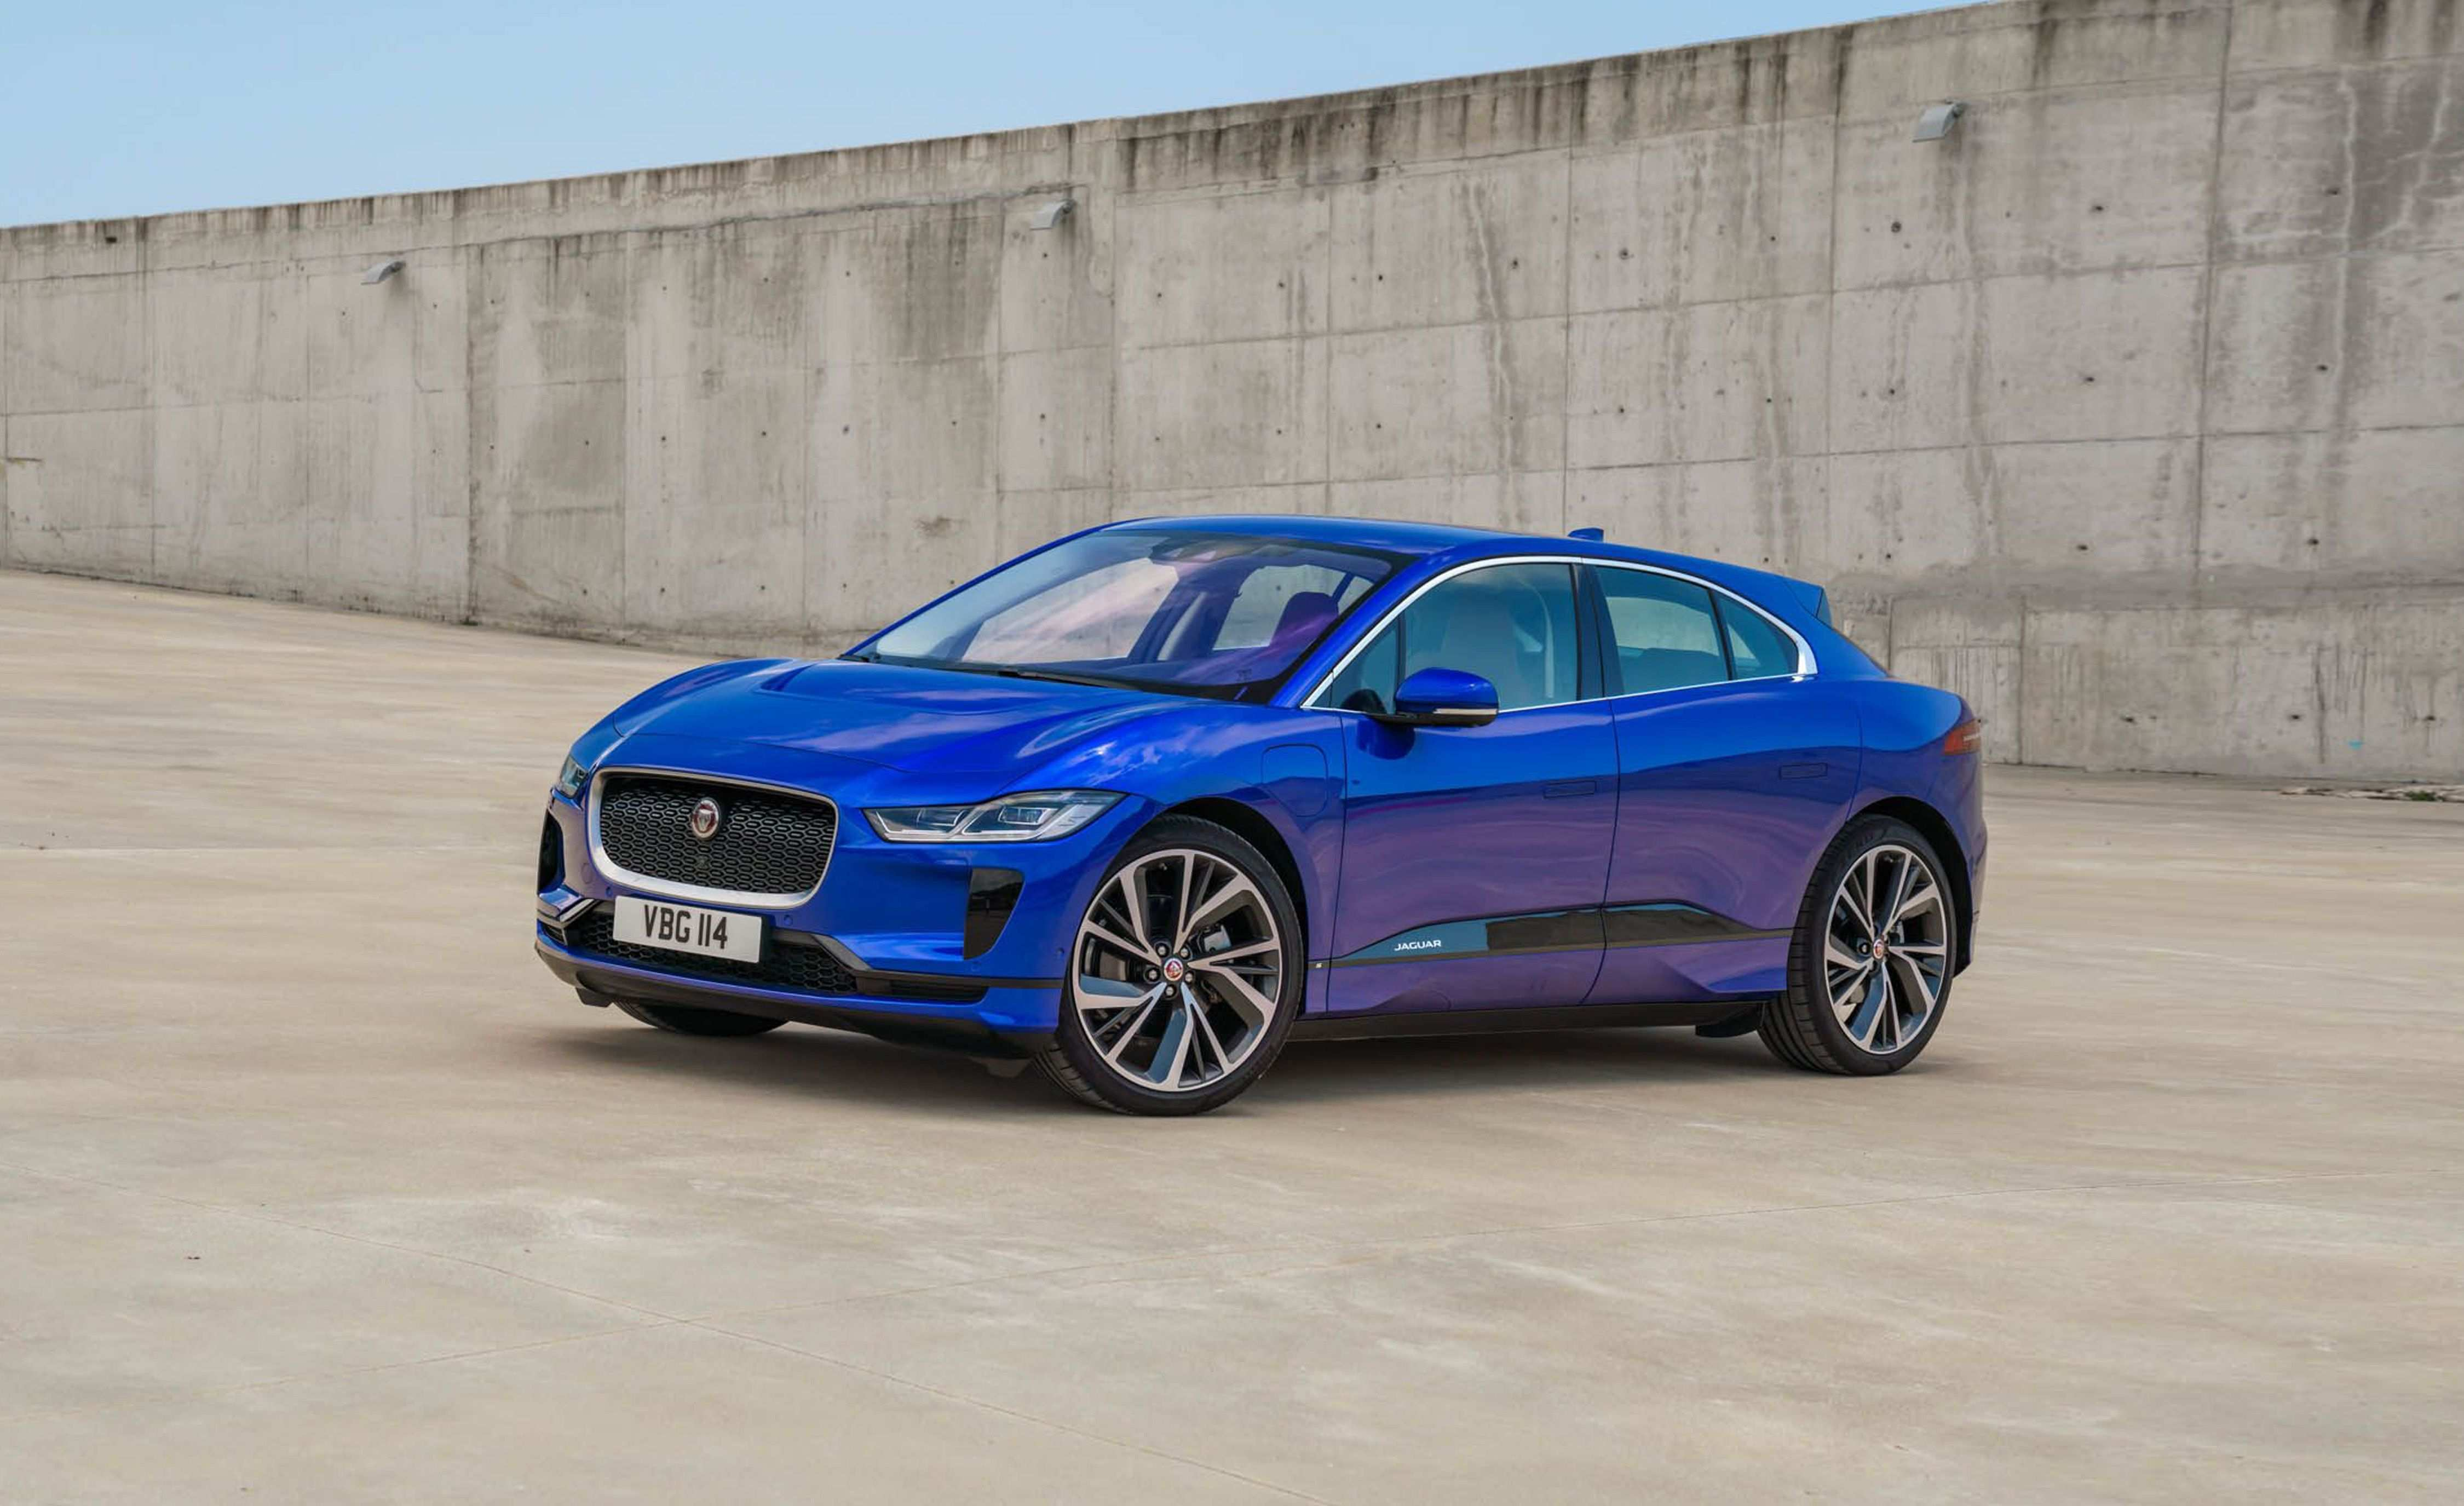 44 Gallery of New 2019 Jaguar I Pace Wiki Review Specs And Release Date Overview with New 2019 Jaguar I Pace Wiki Review Specs And Release Date